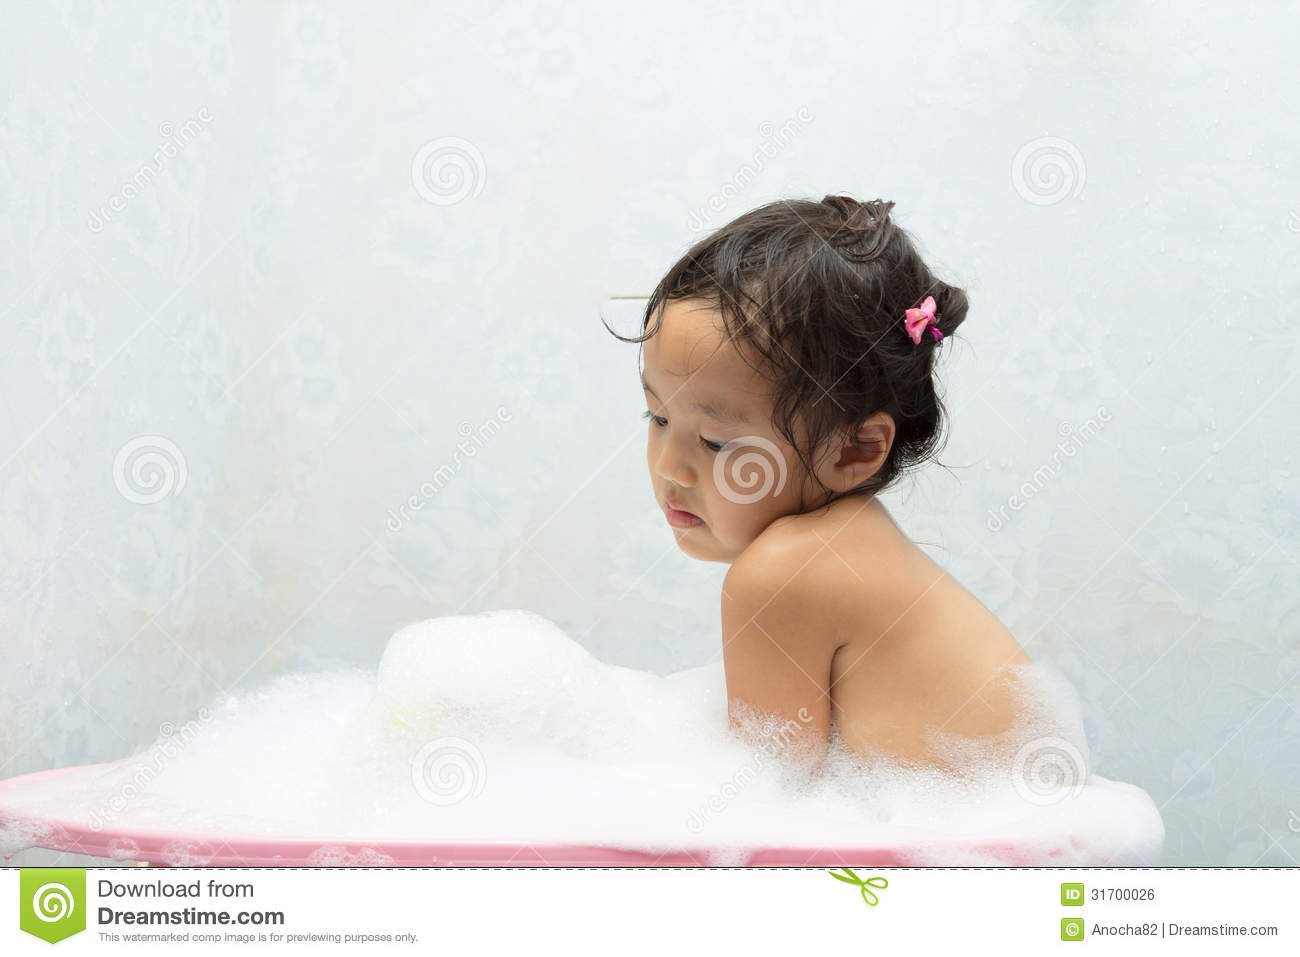 Royalty free stock image children play in the water